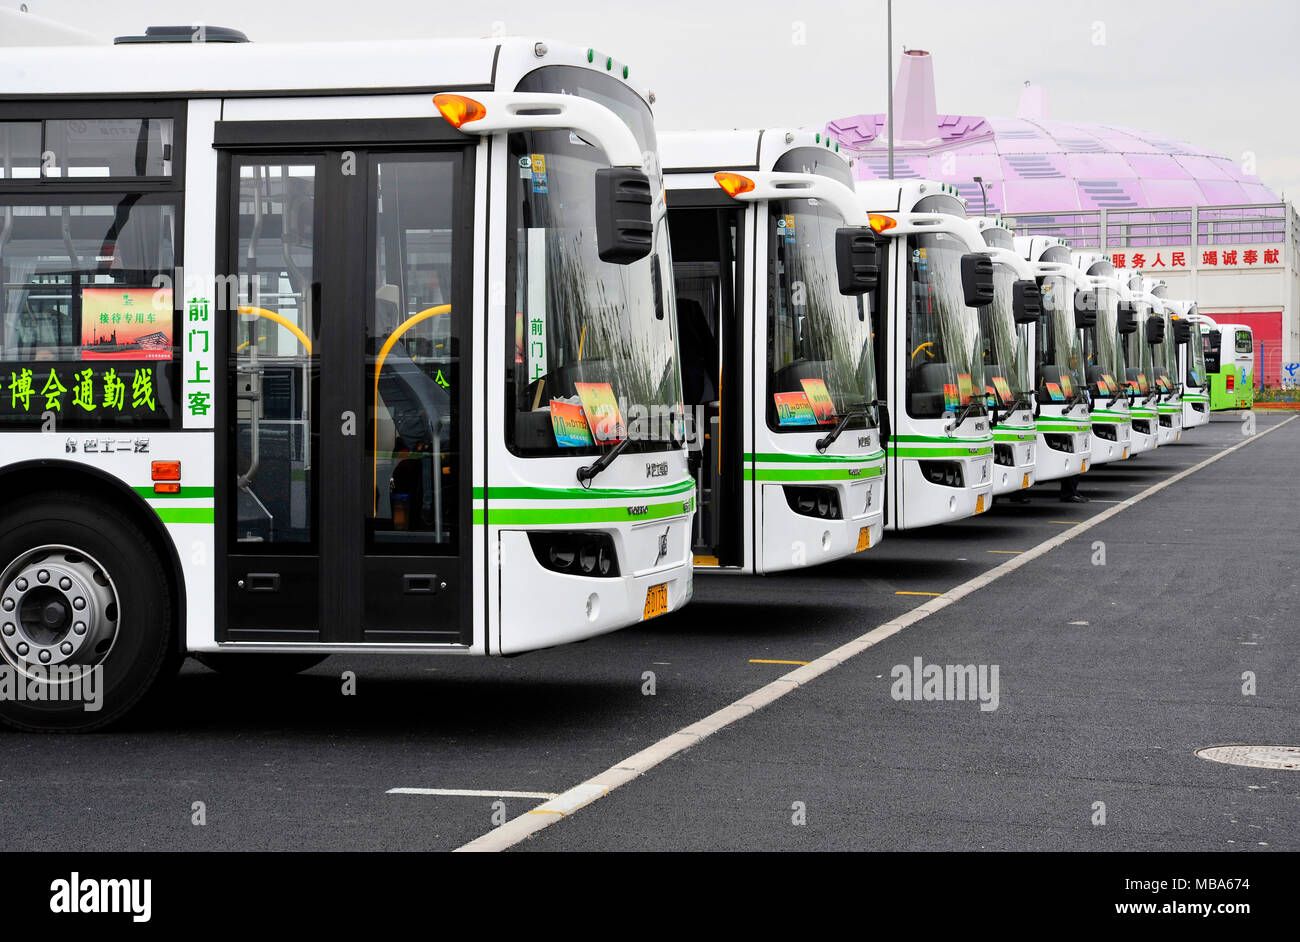 expo eco-buses at the 2010 shanghai world expo, china - boost